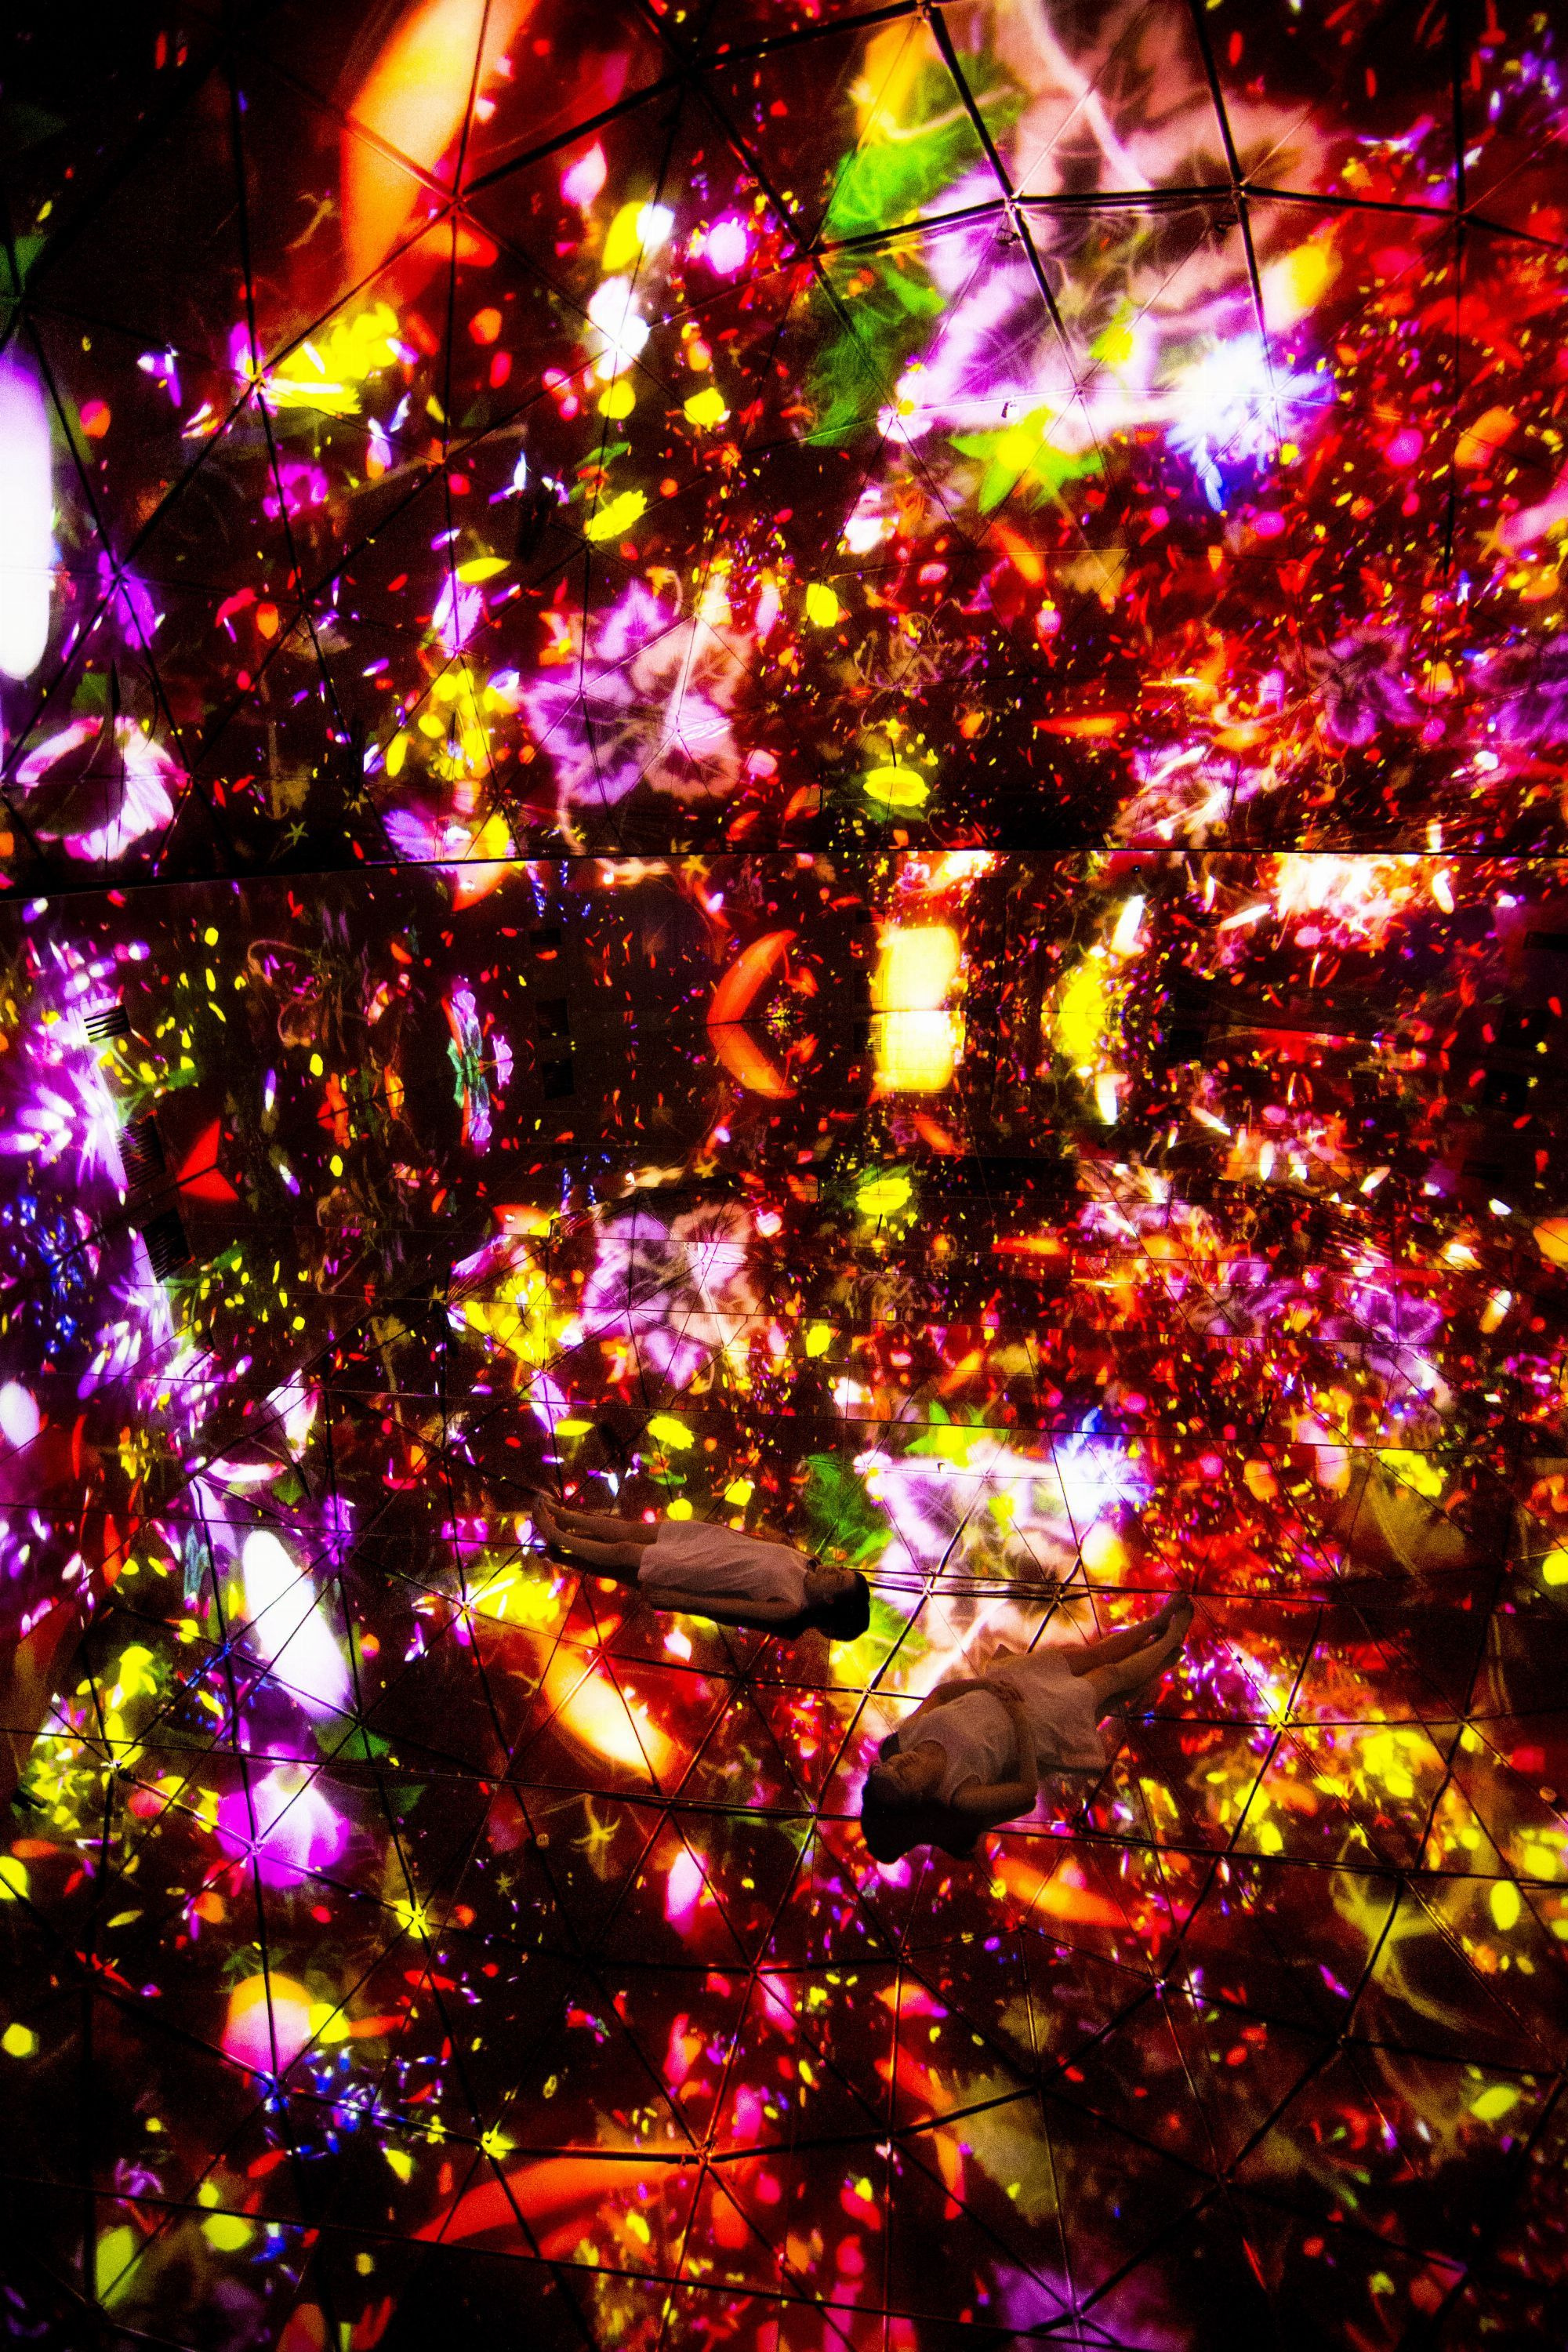 Floating in the Falling Universe of Flowers | teamLab / チームラボ